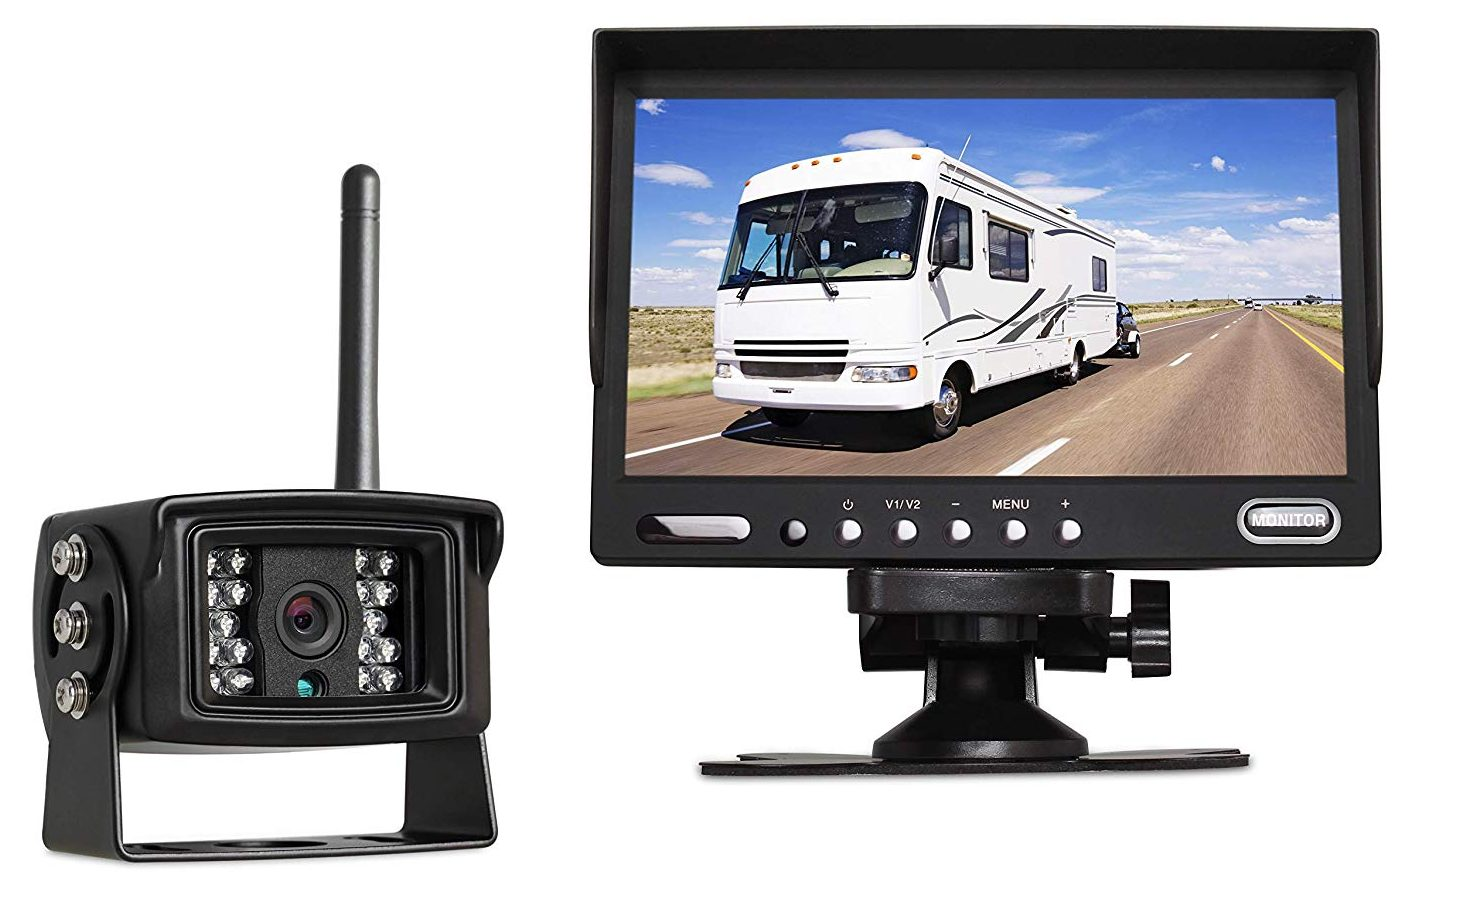 Best Rv Backup Cameras In 2019 Top 7 Picks Reviewed Compared